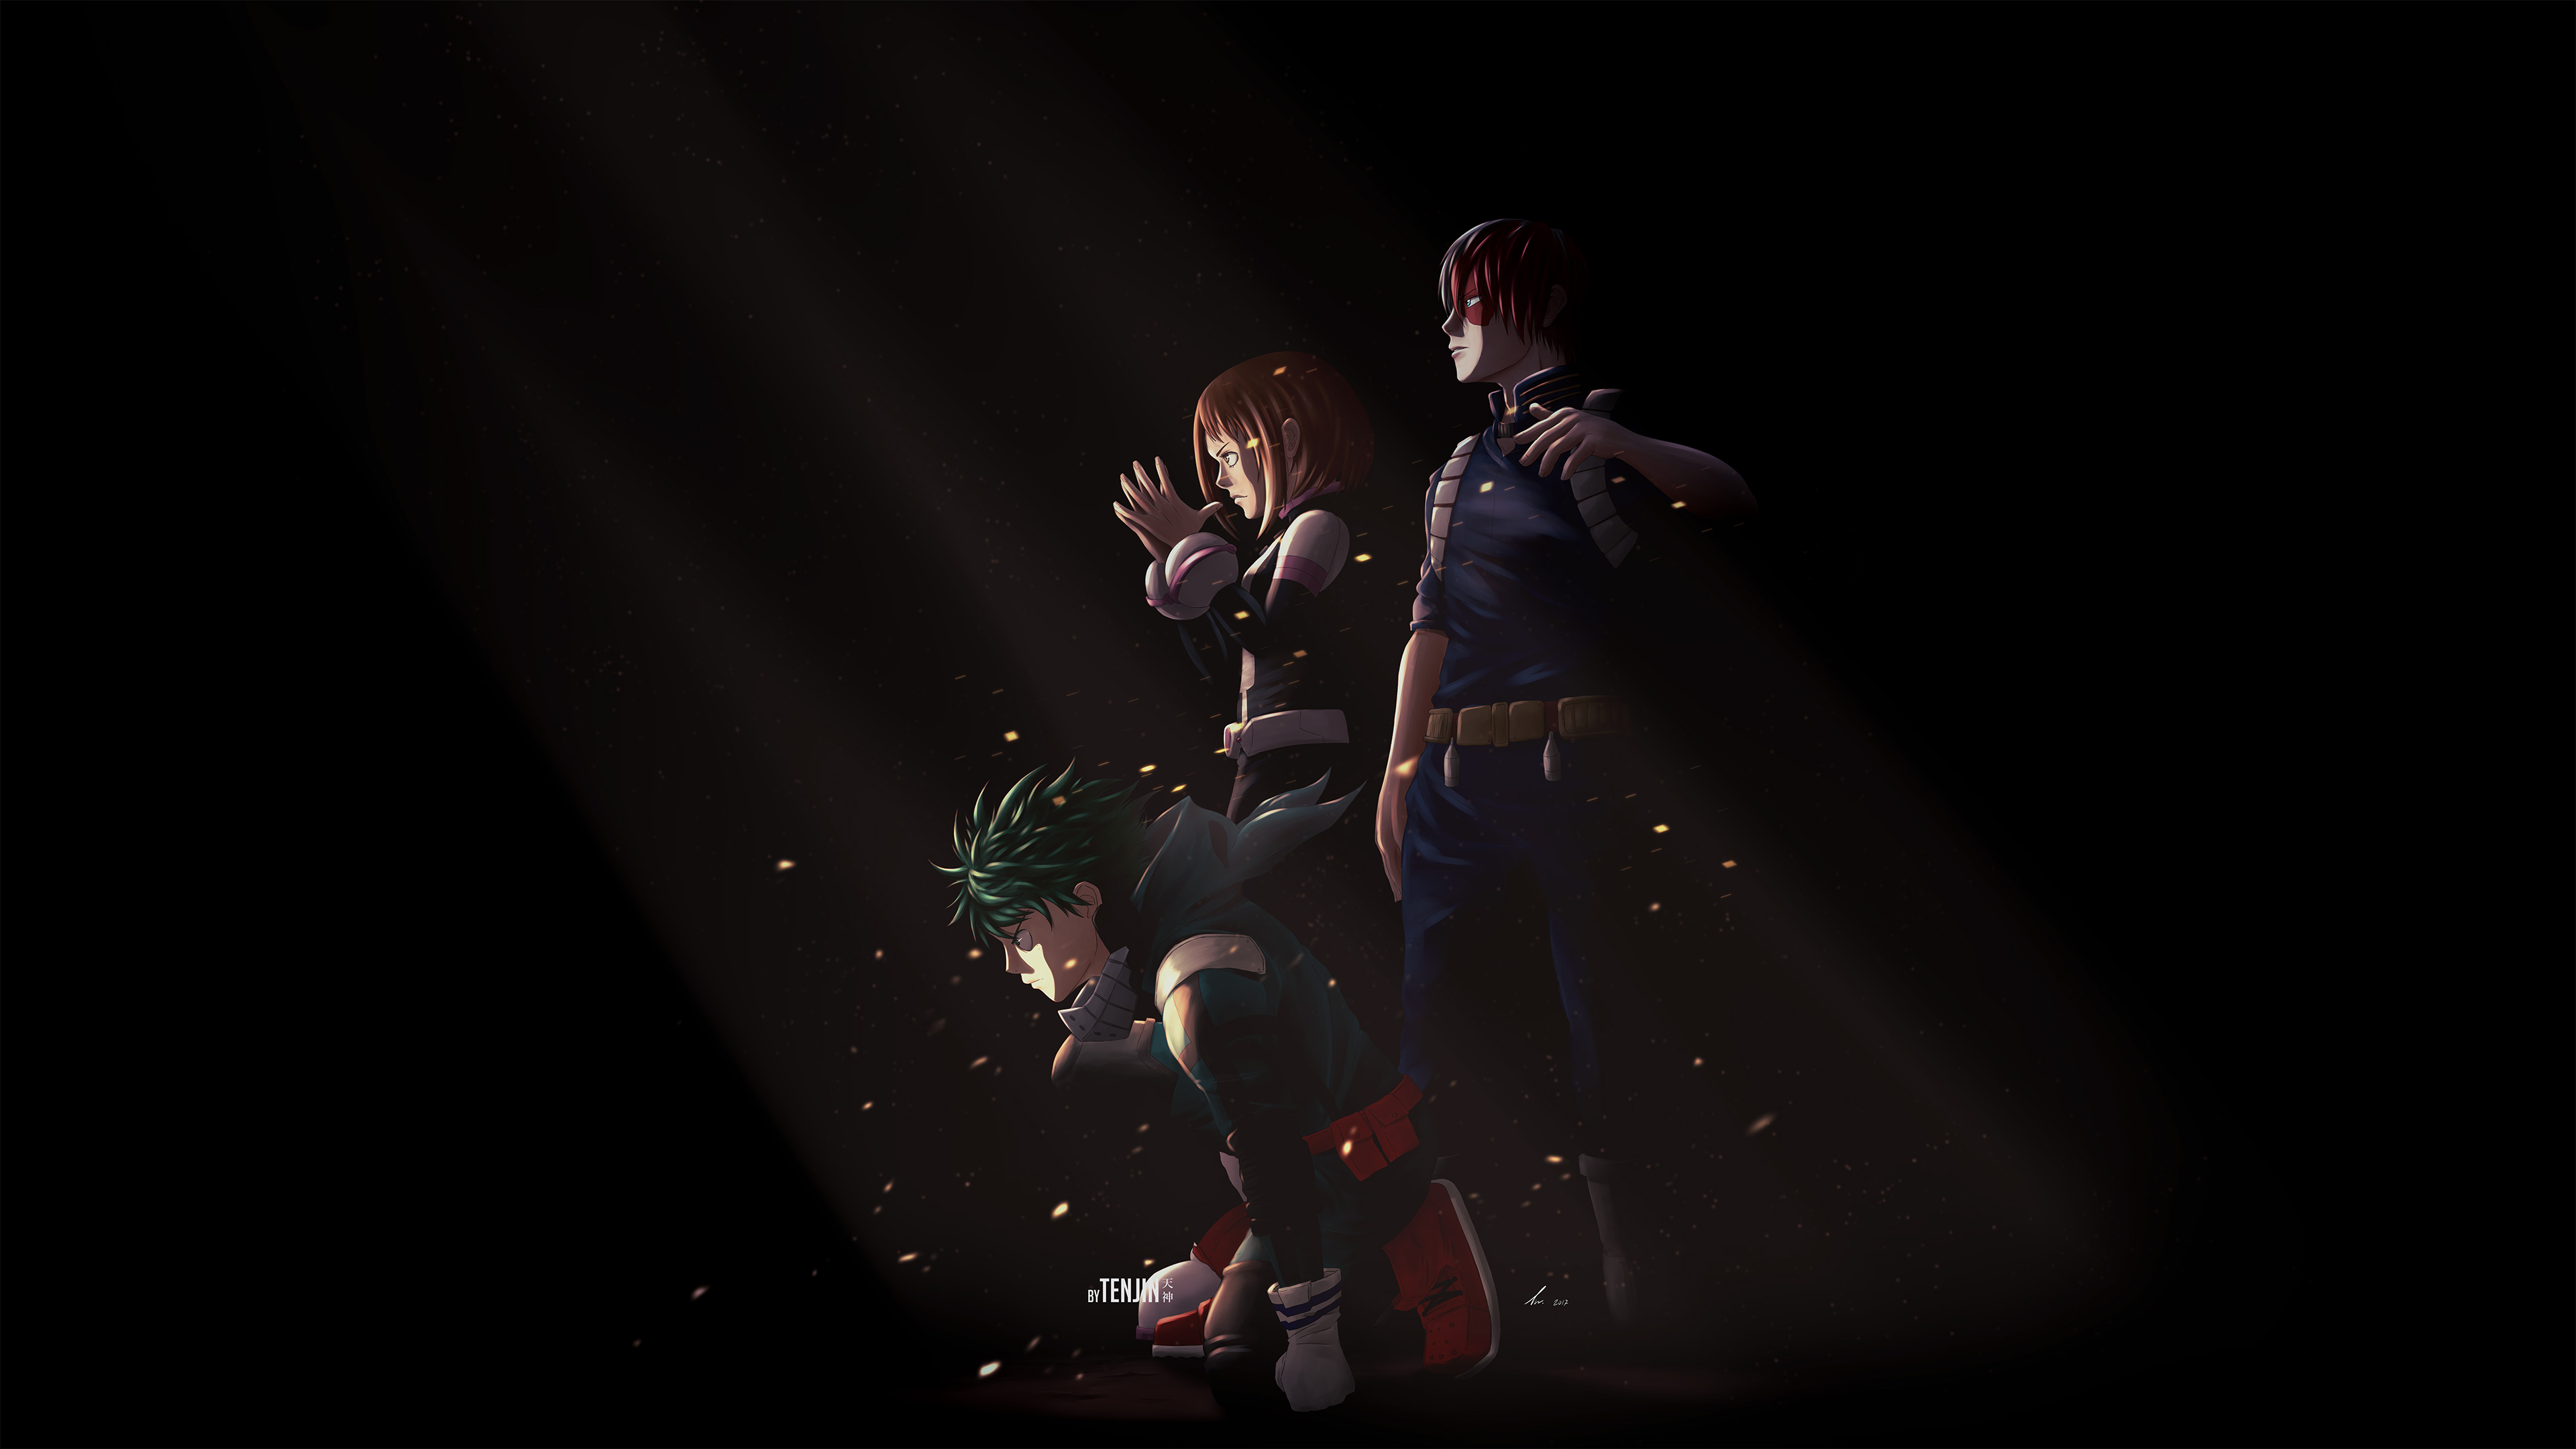 Wallpaper 4k Uraraka Deku Shouto Todoroki My Hero Academia